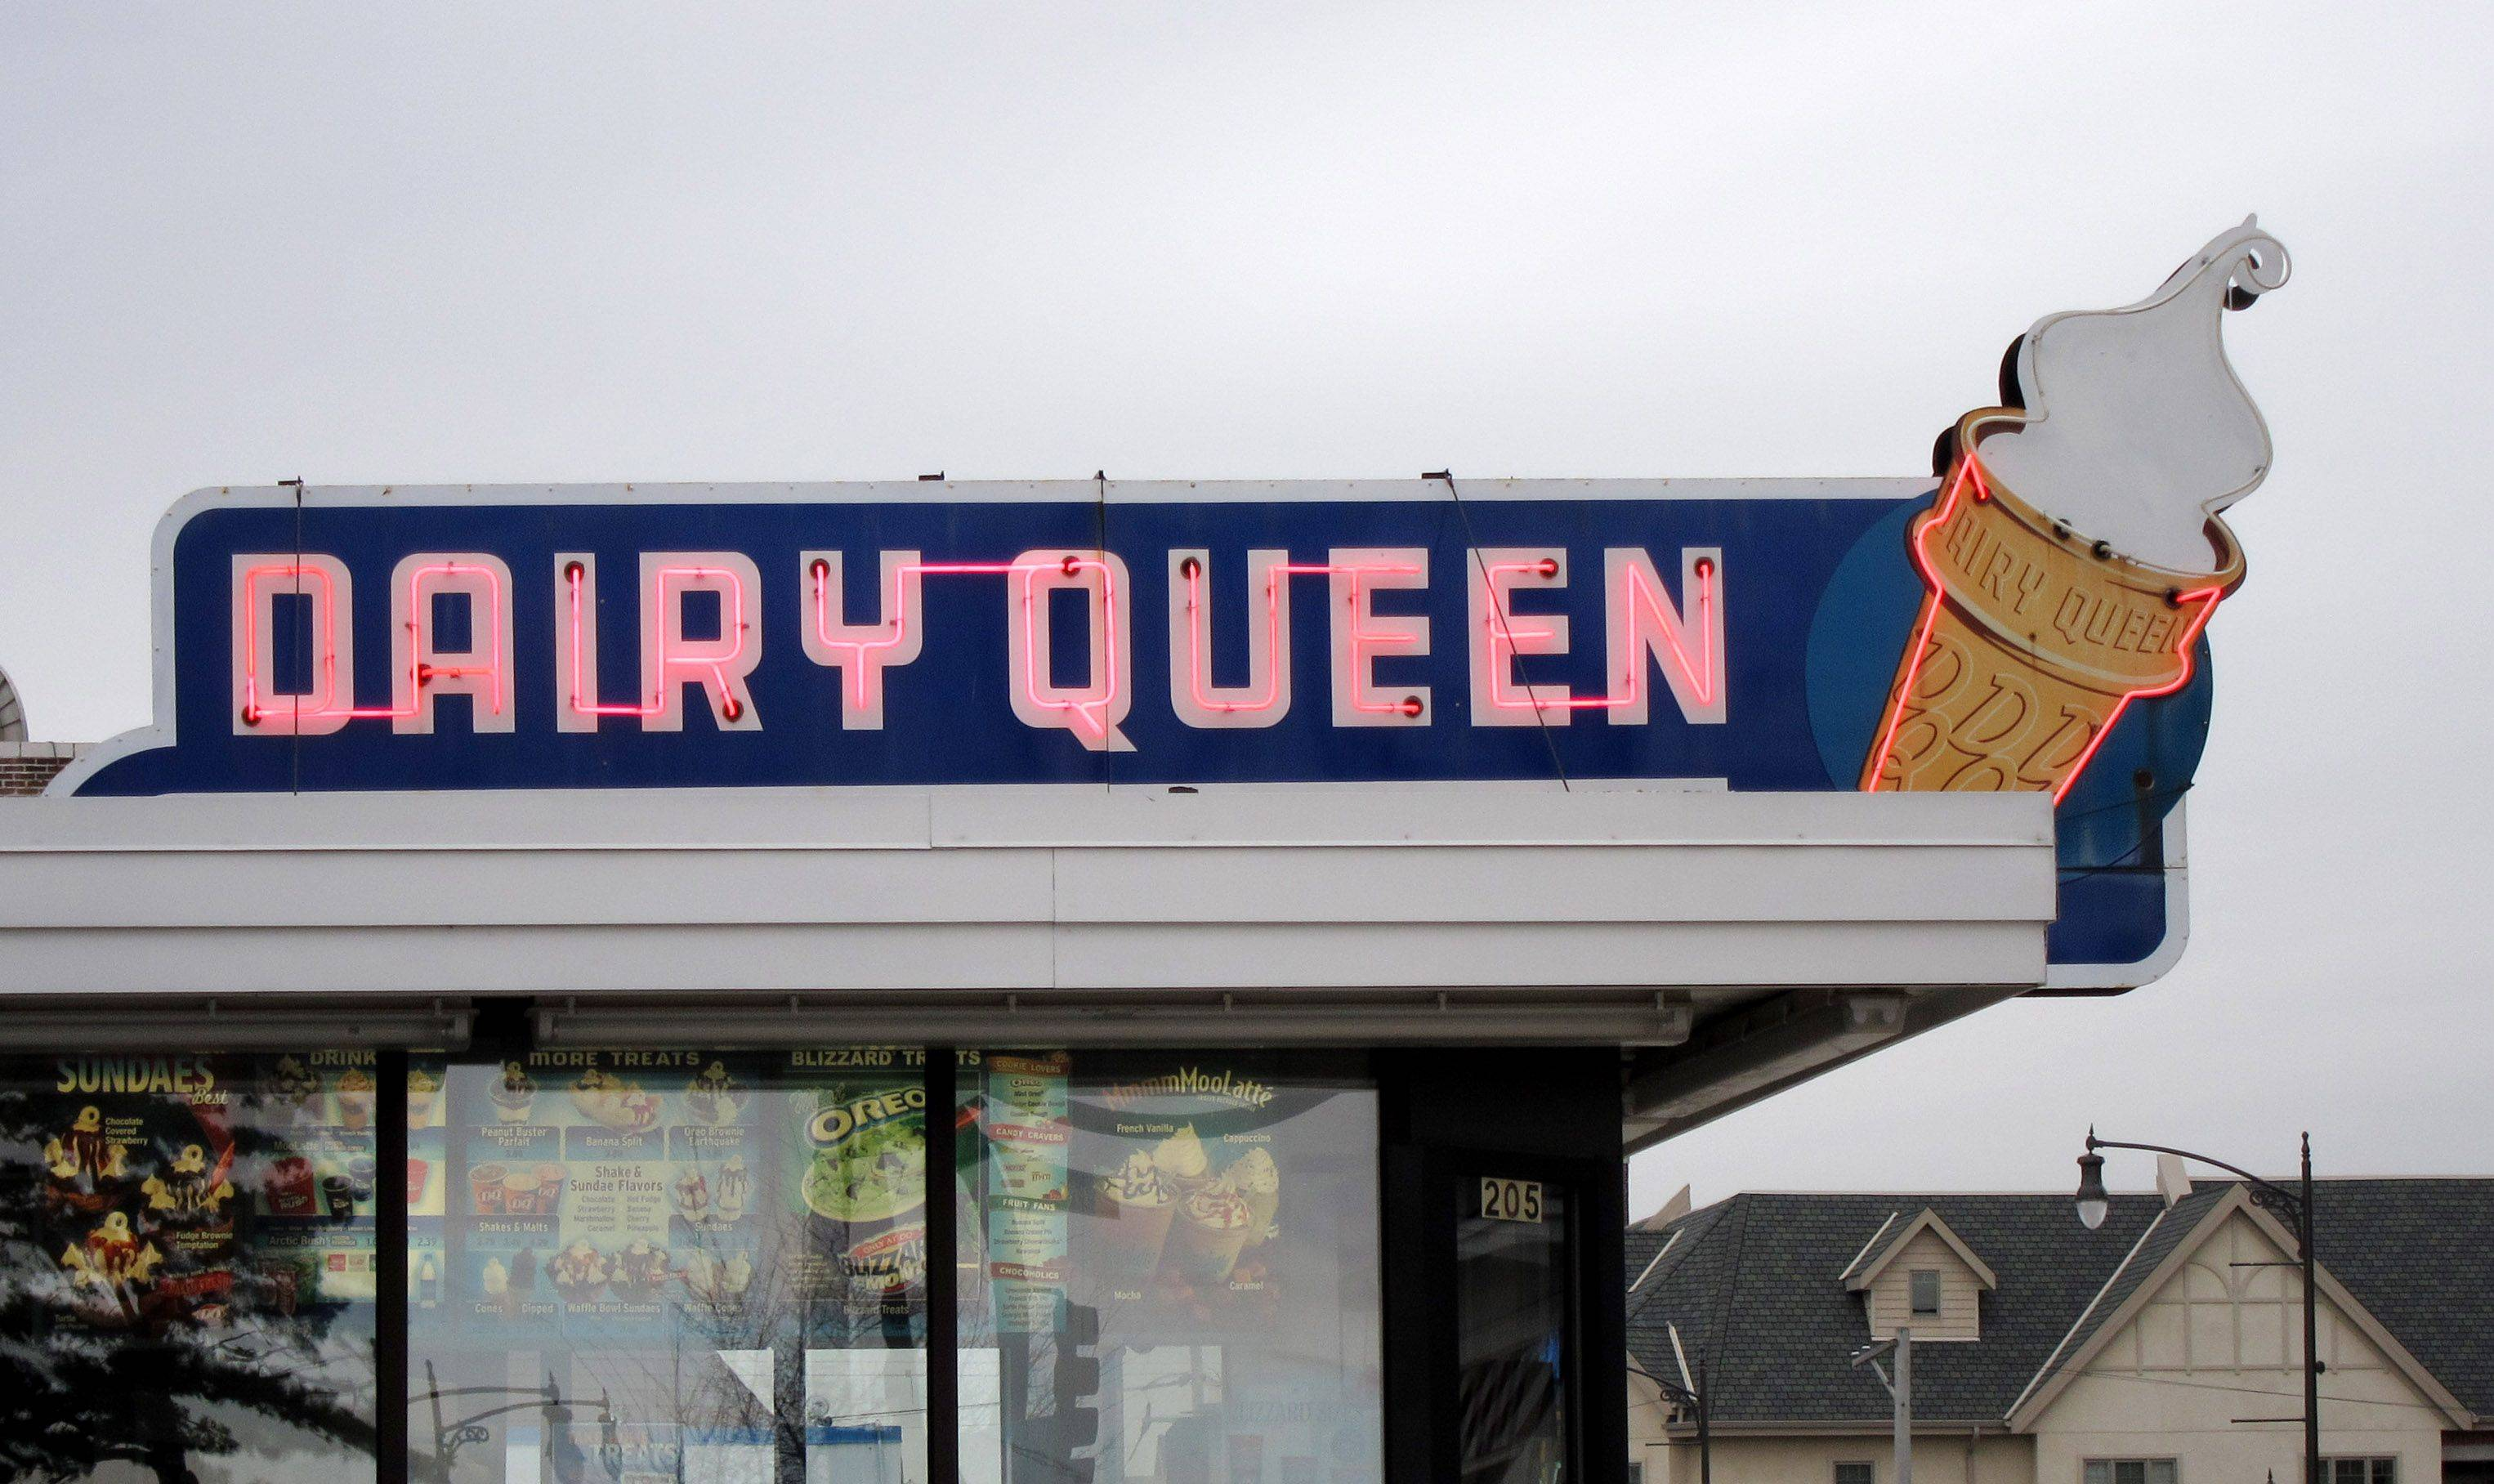 The Dairy Queen sign at 205 S. Main St. in Lombard -- not the building itself -- is listed as a local landmark.